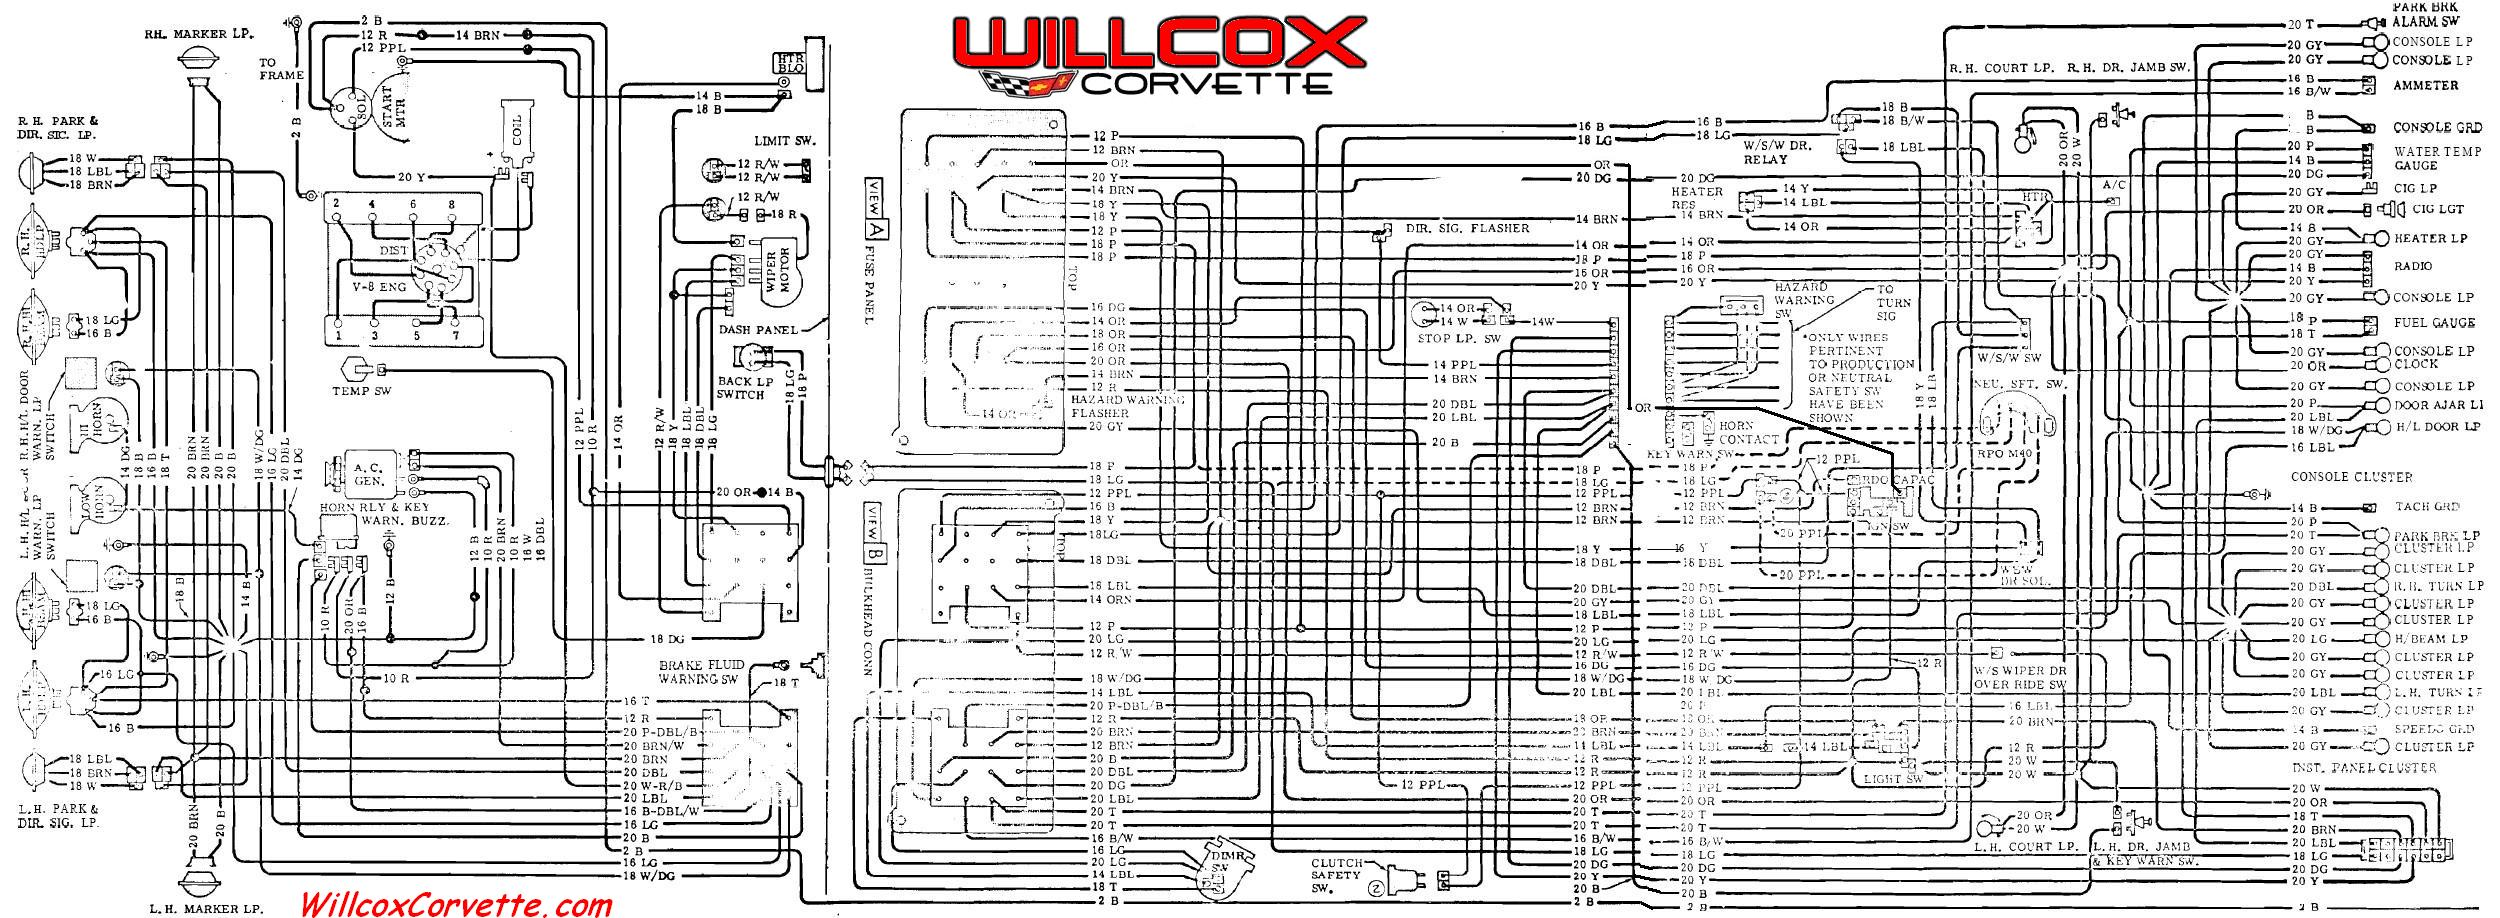 1973 corvette wiper switch wiring diagram html with 3819007 69 Corvette With 78 Dash Gauges How To Get It To Work on Universal Wiper Switch Wiring Diagram 4 Wire Wiper Motor furthermore Vacuum Hose Diagram 1990 Chevy 350 Tbi further Vw Turn Signal Lenses Assemblies further Diagram additionally 1966 Corvette Engine Wiring.